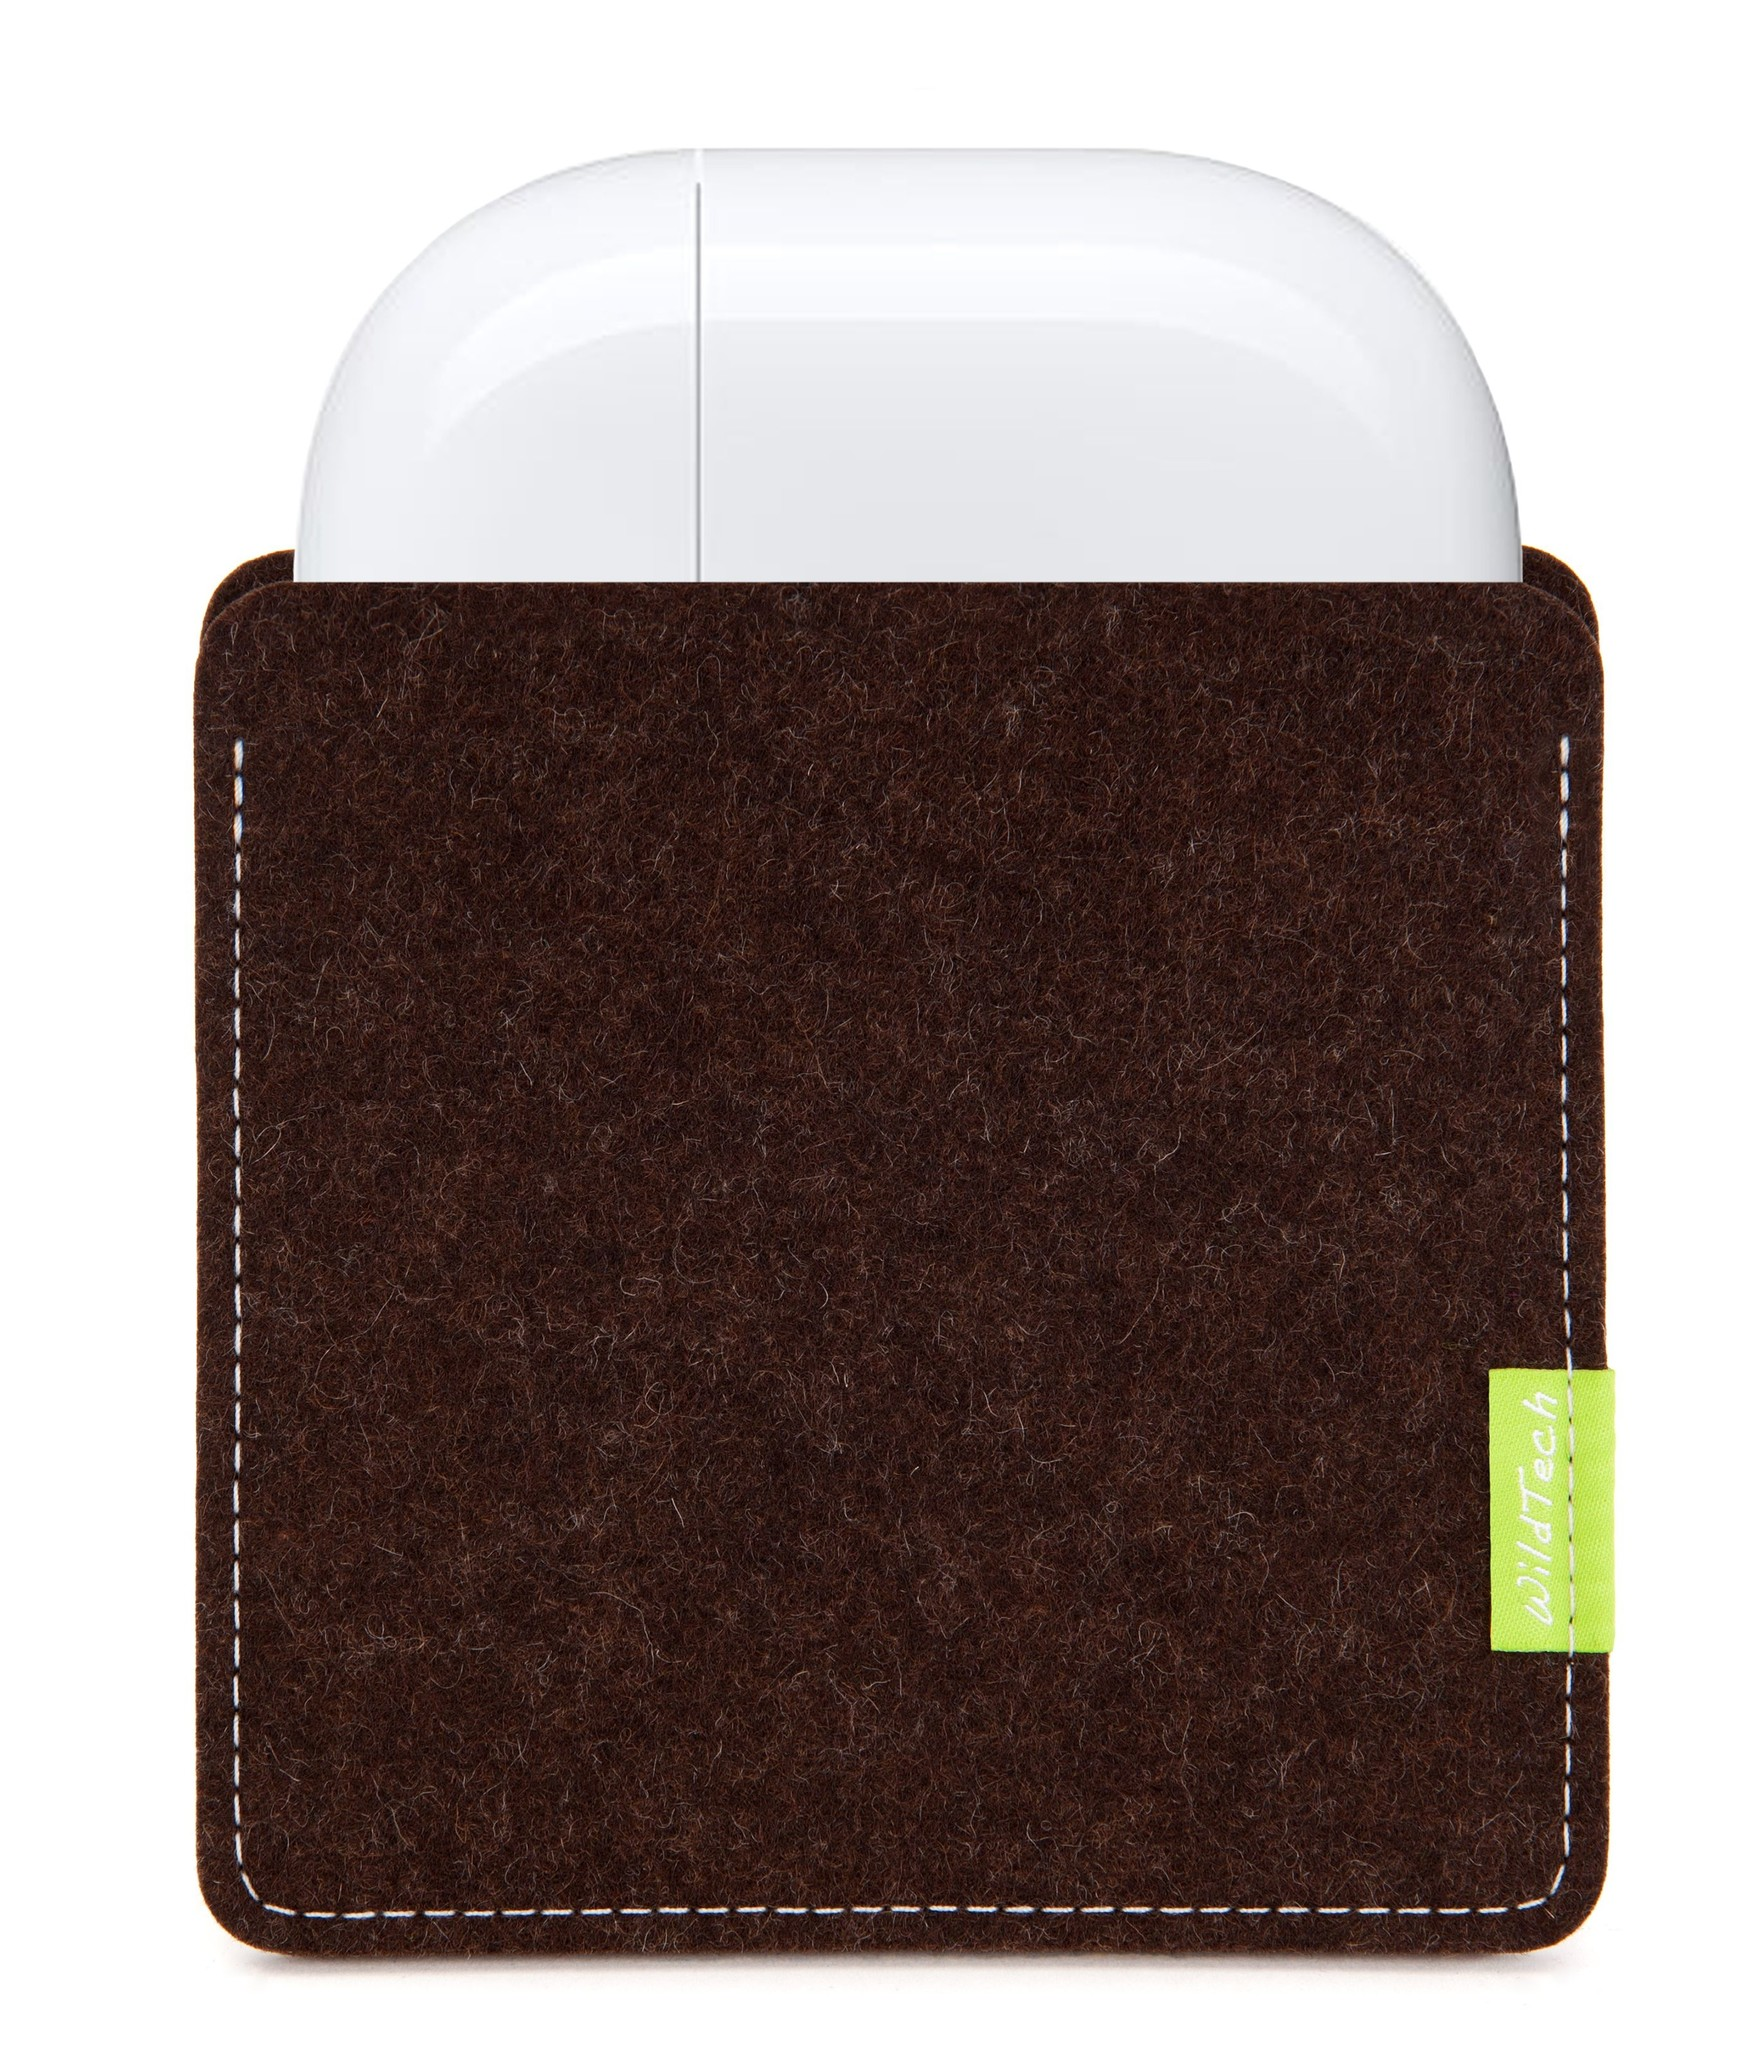 AirPods Sleeve Truffle-Brown-1